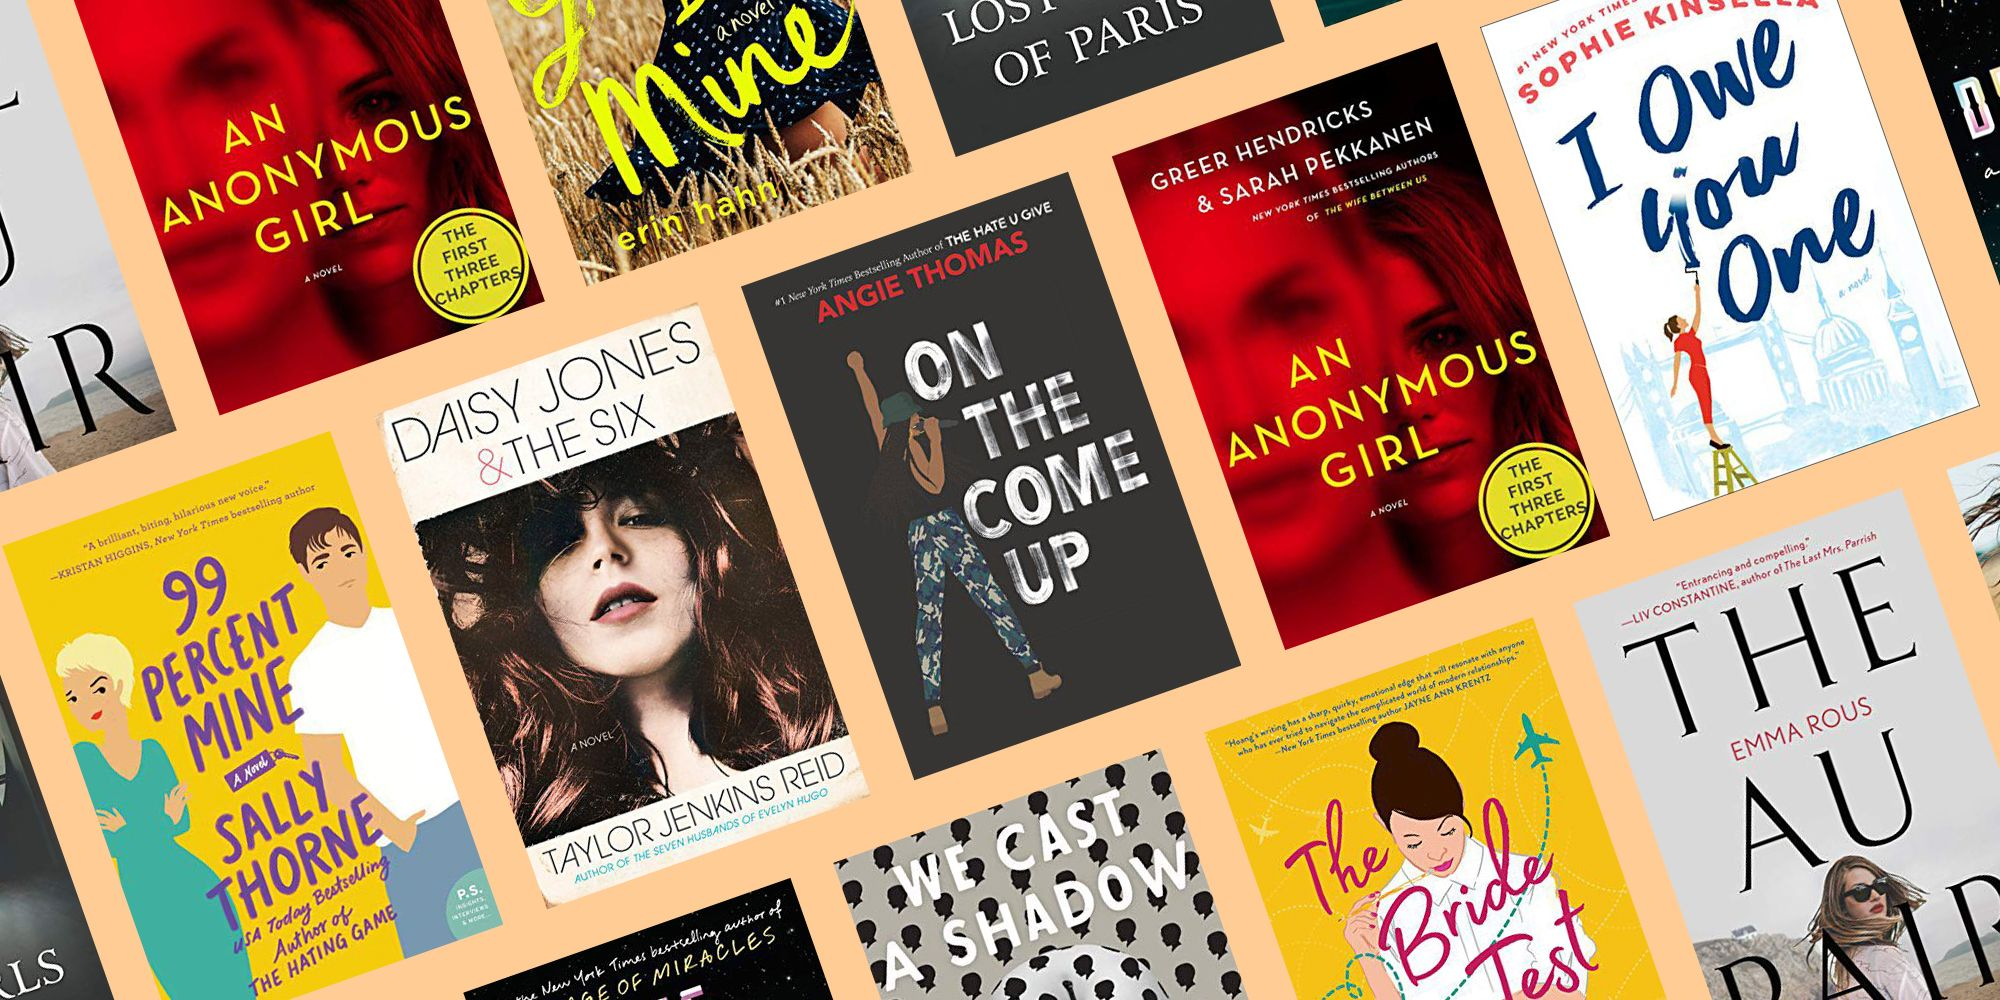 Best Female Authors 2019 The Best New Books of 2019 — Books Coming Out in 2019 to Add to